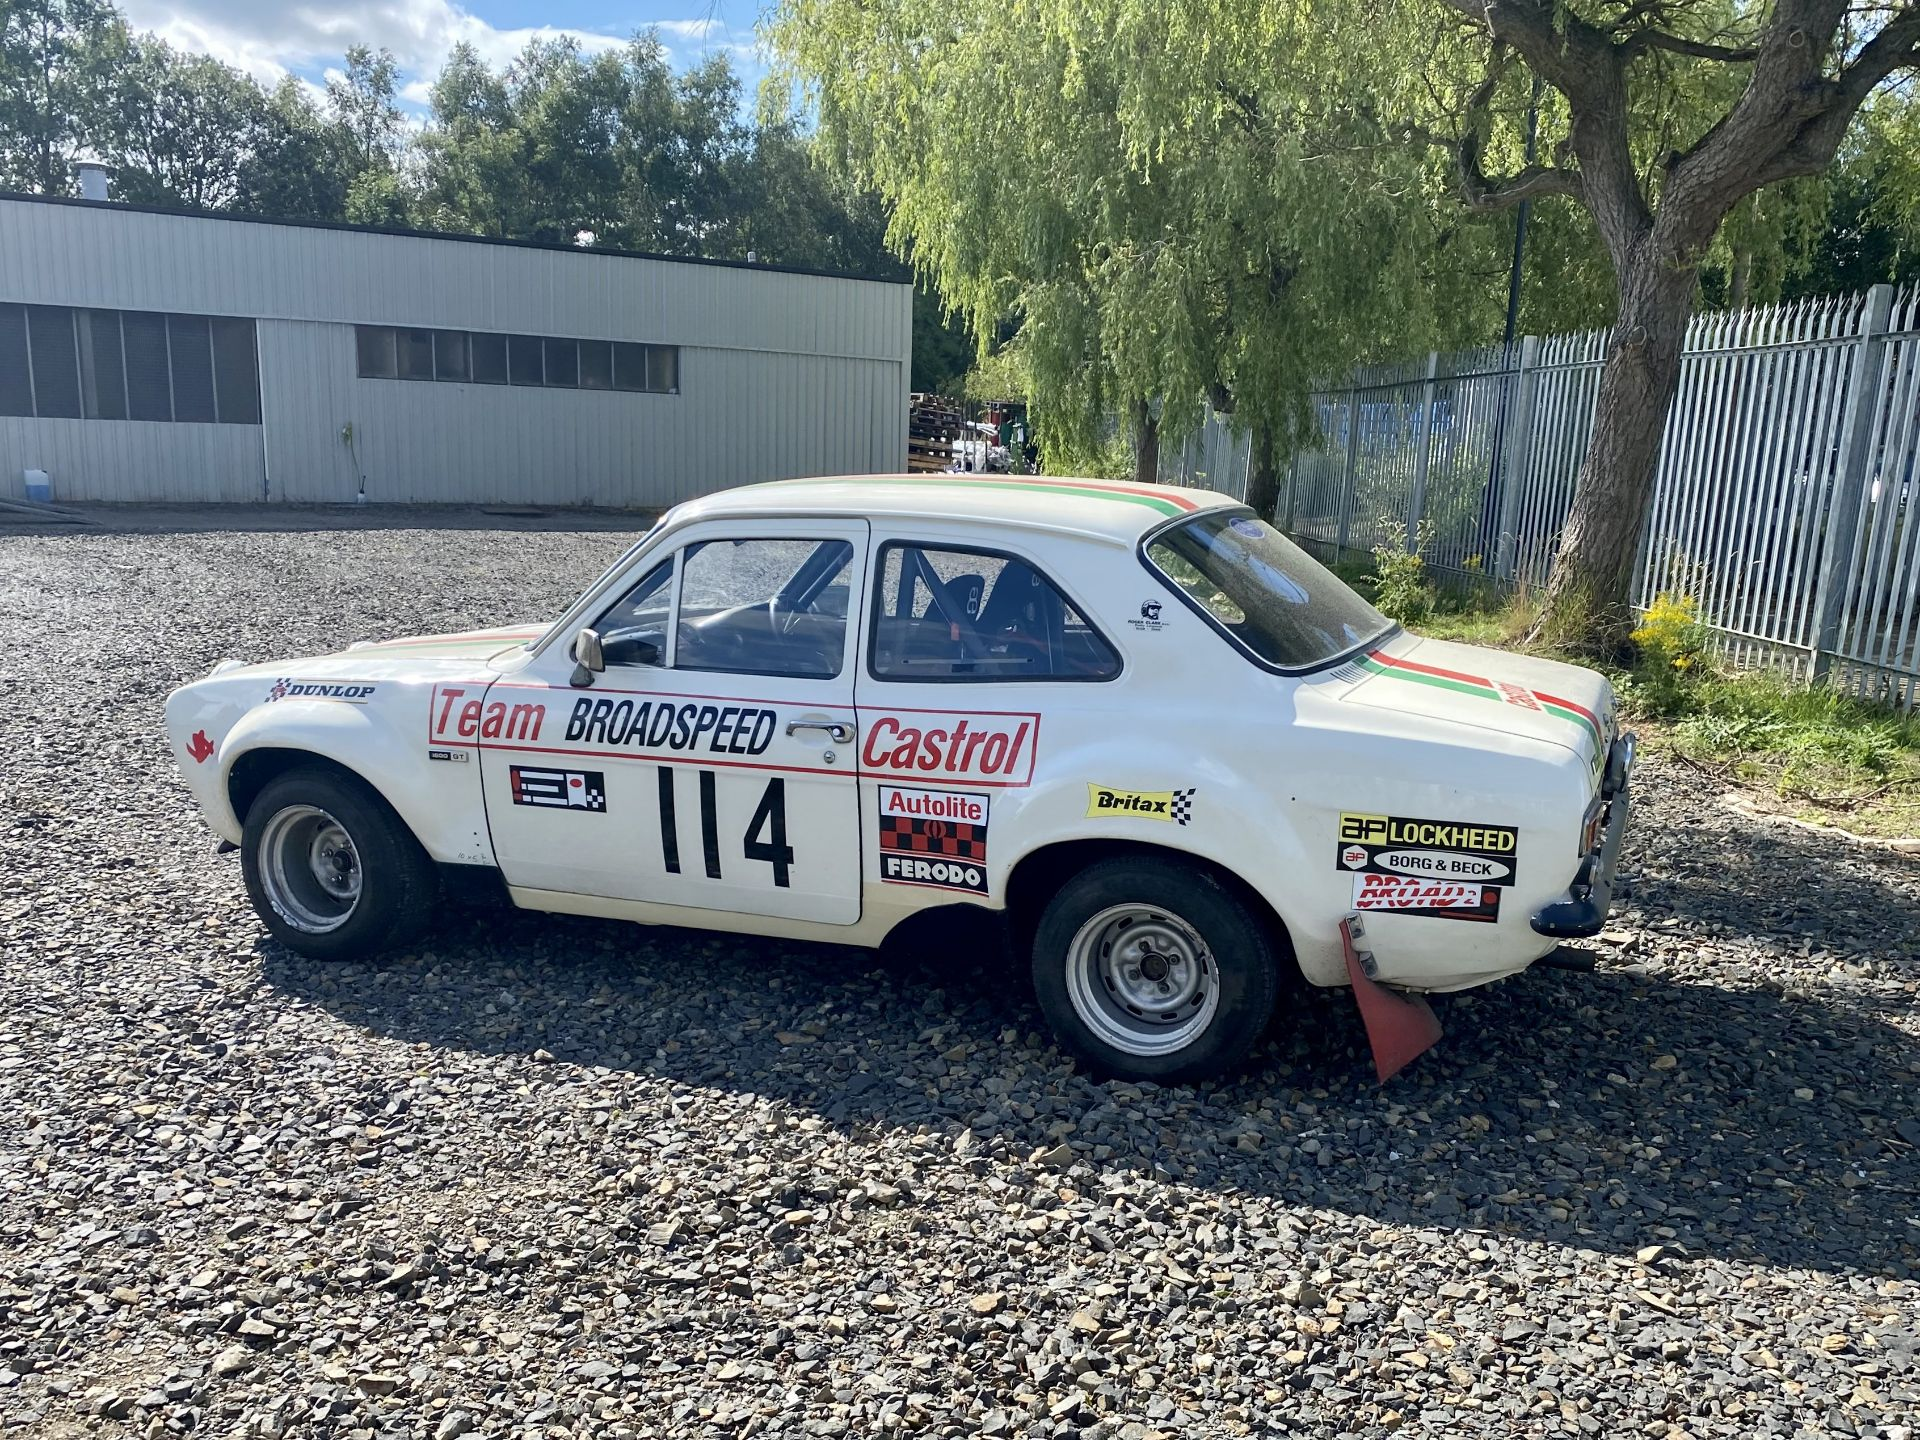 Ford Escort Mexico - Image 21 of 51